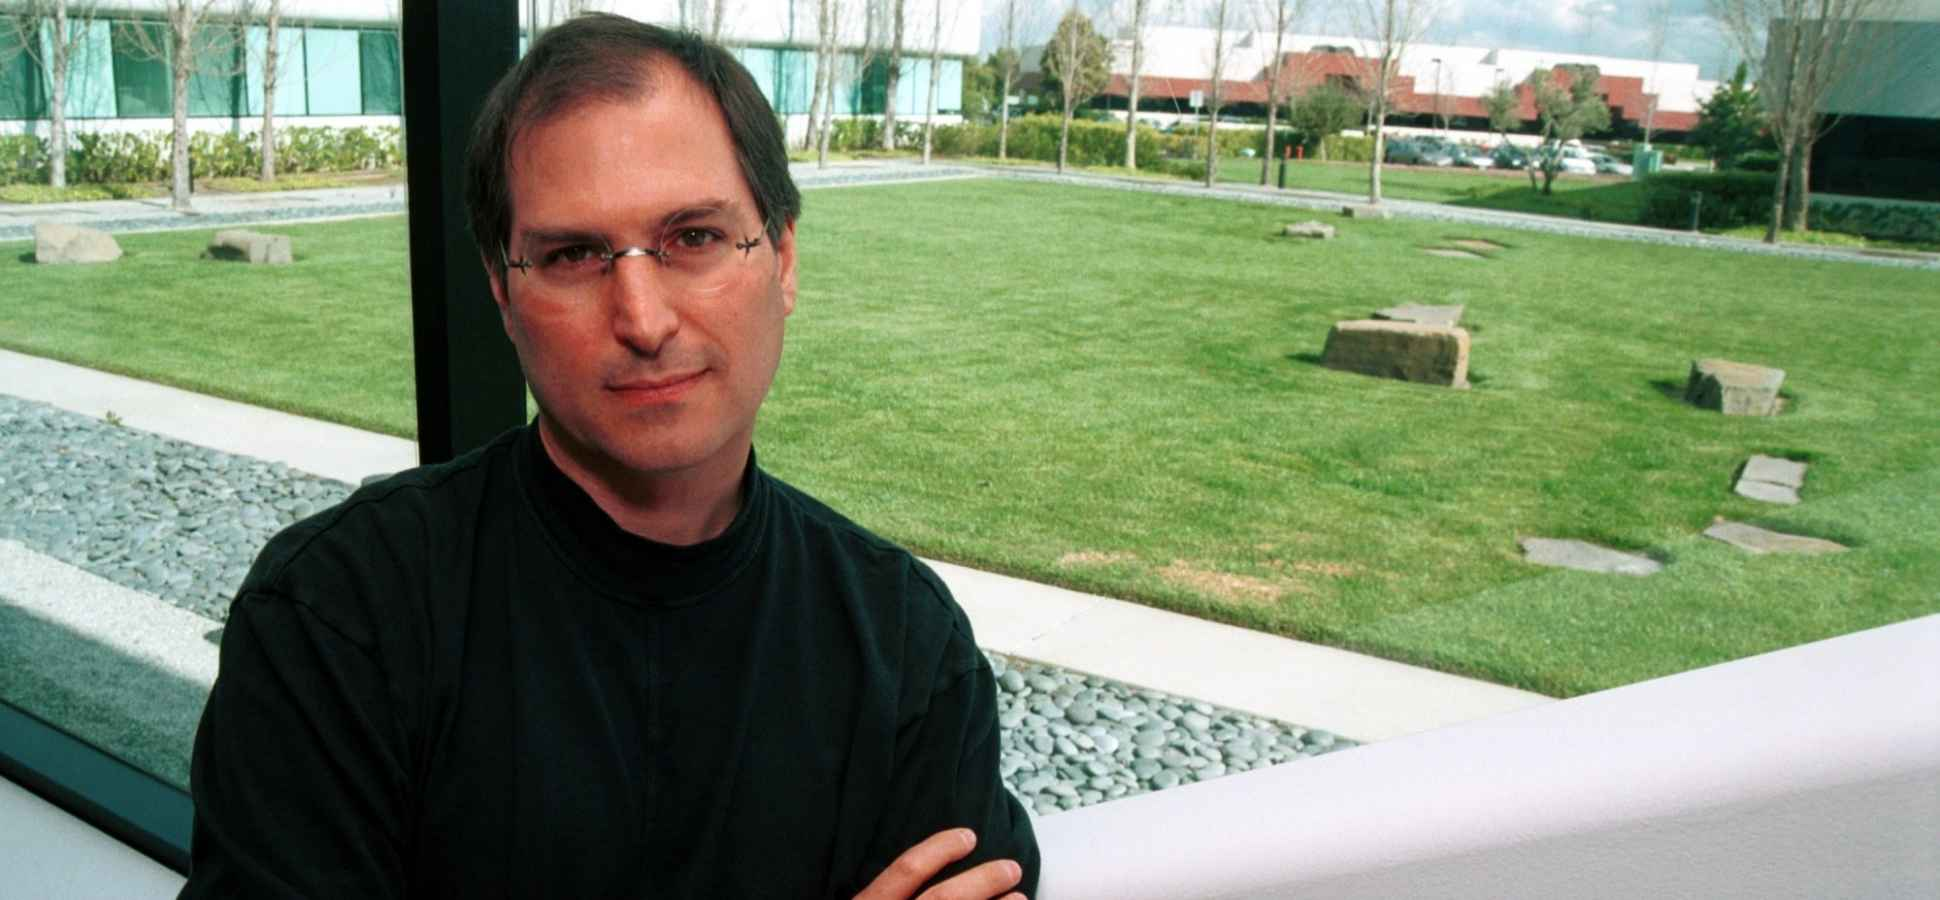 20 Years Ago, Steve Jobs Demonstrated the Perfect Way to Respond to an Insult